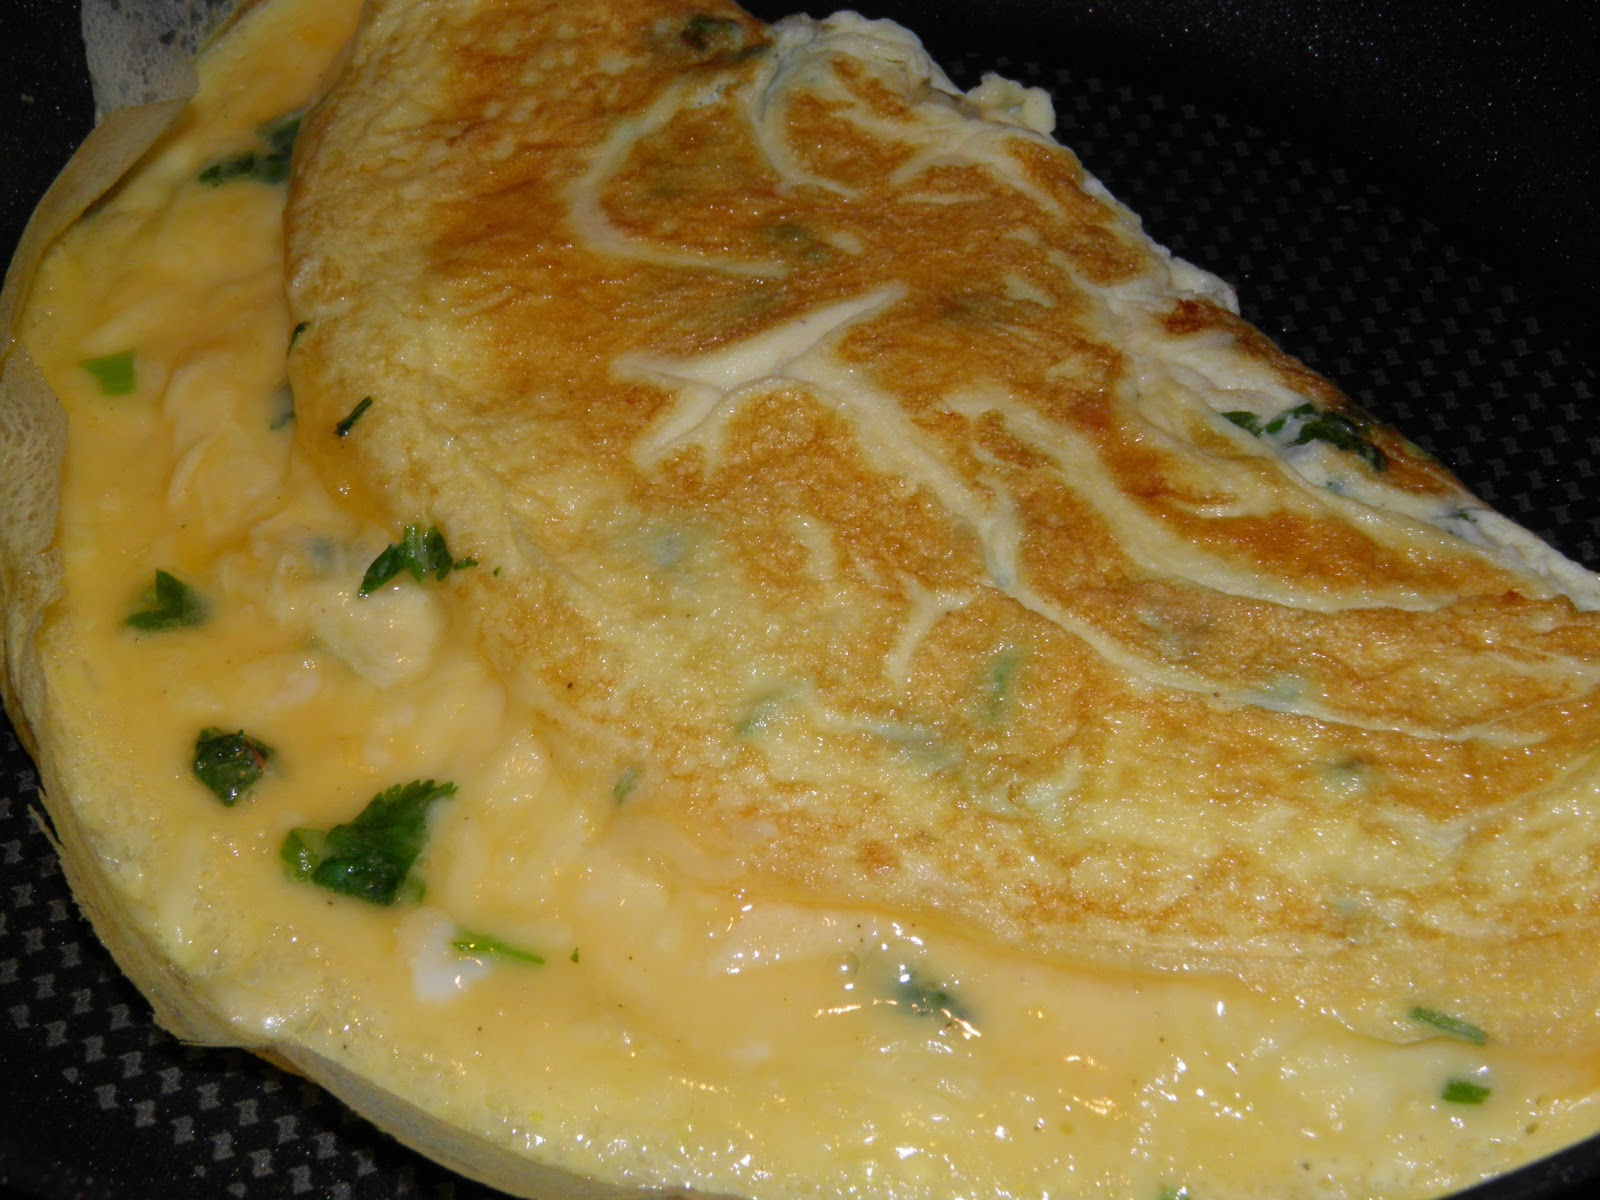 Anna's Cooking Adventure: 20101027 Chilli Cheese Omelette